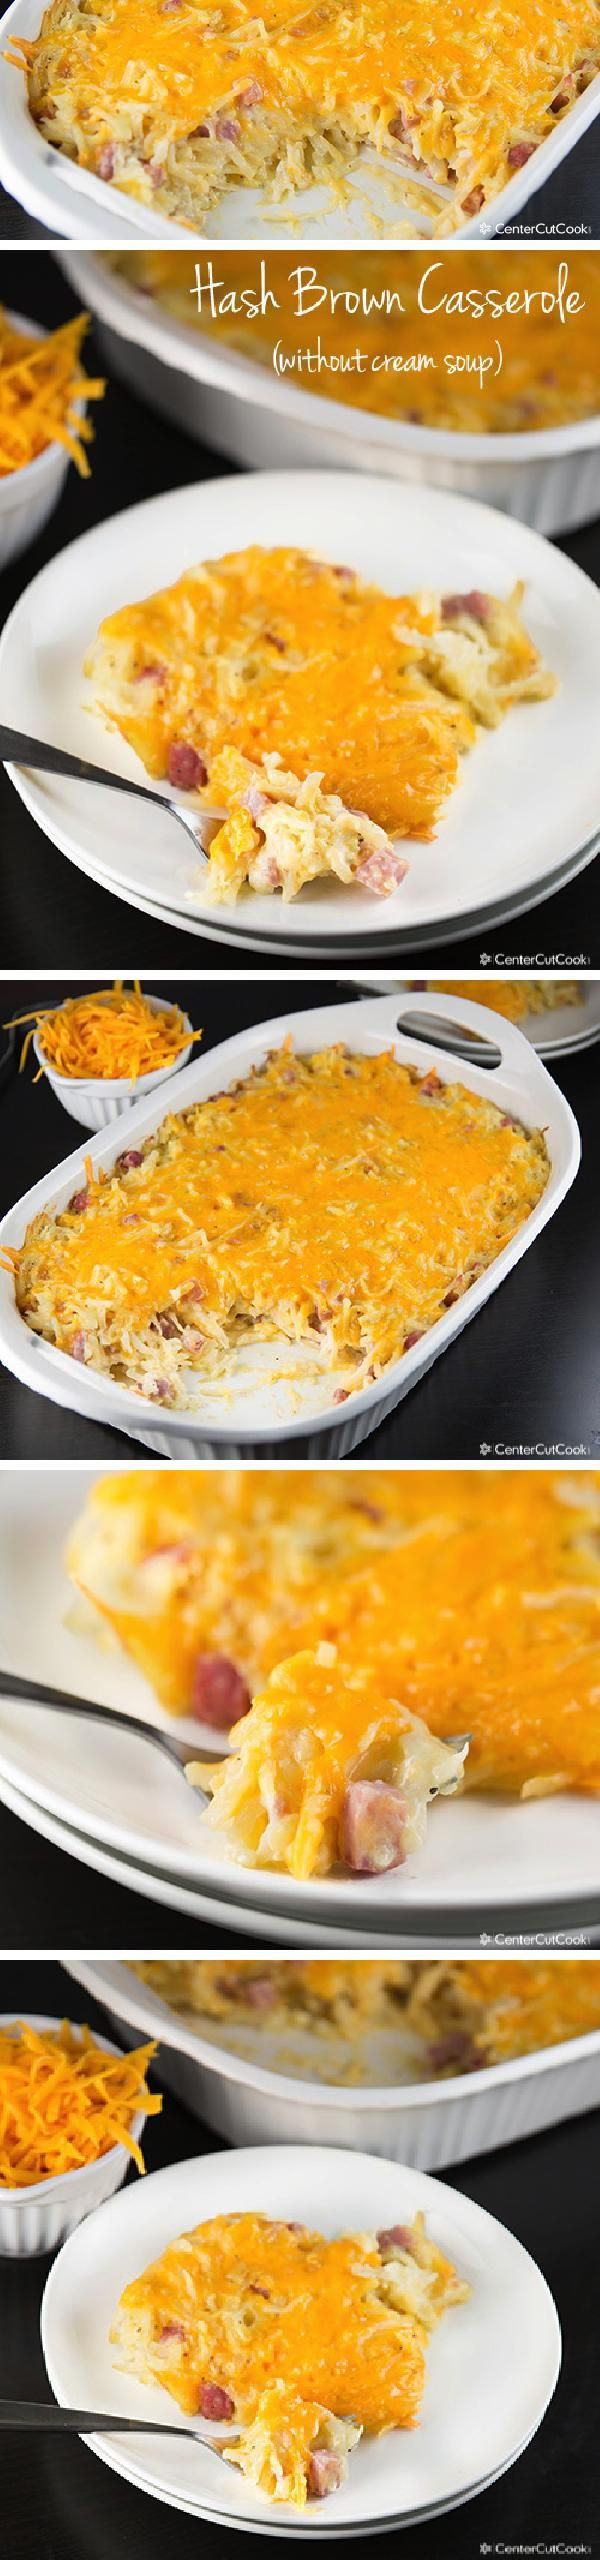 Traditional HASH BROWN CASSEROLE (similar to Cracker Barrel), but updated without CREAM soup! Comforting, delicious, and can also be made in the slow cooker or frozen and made at a later date!